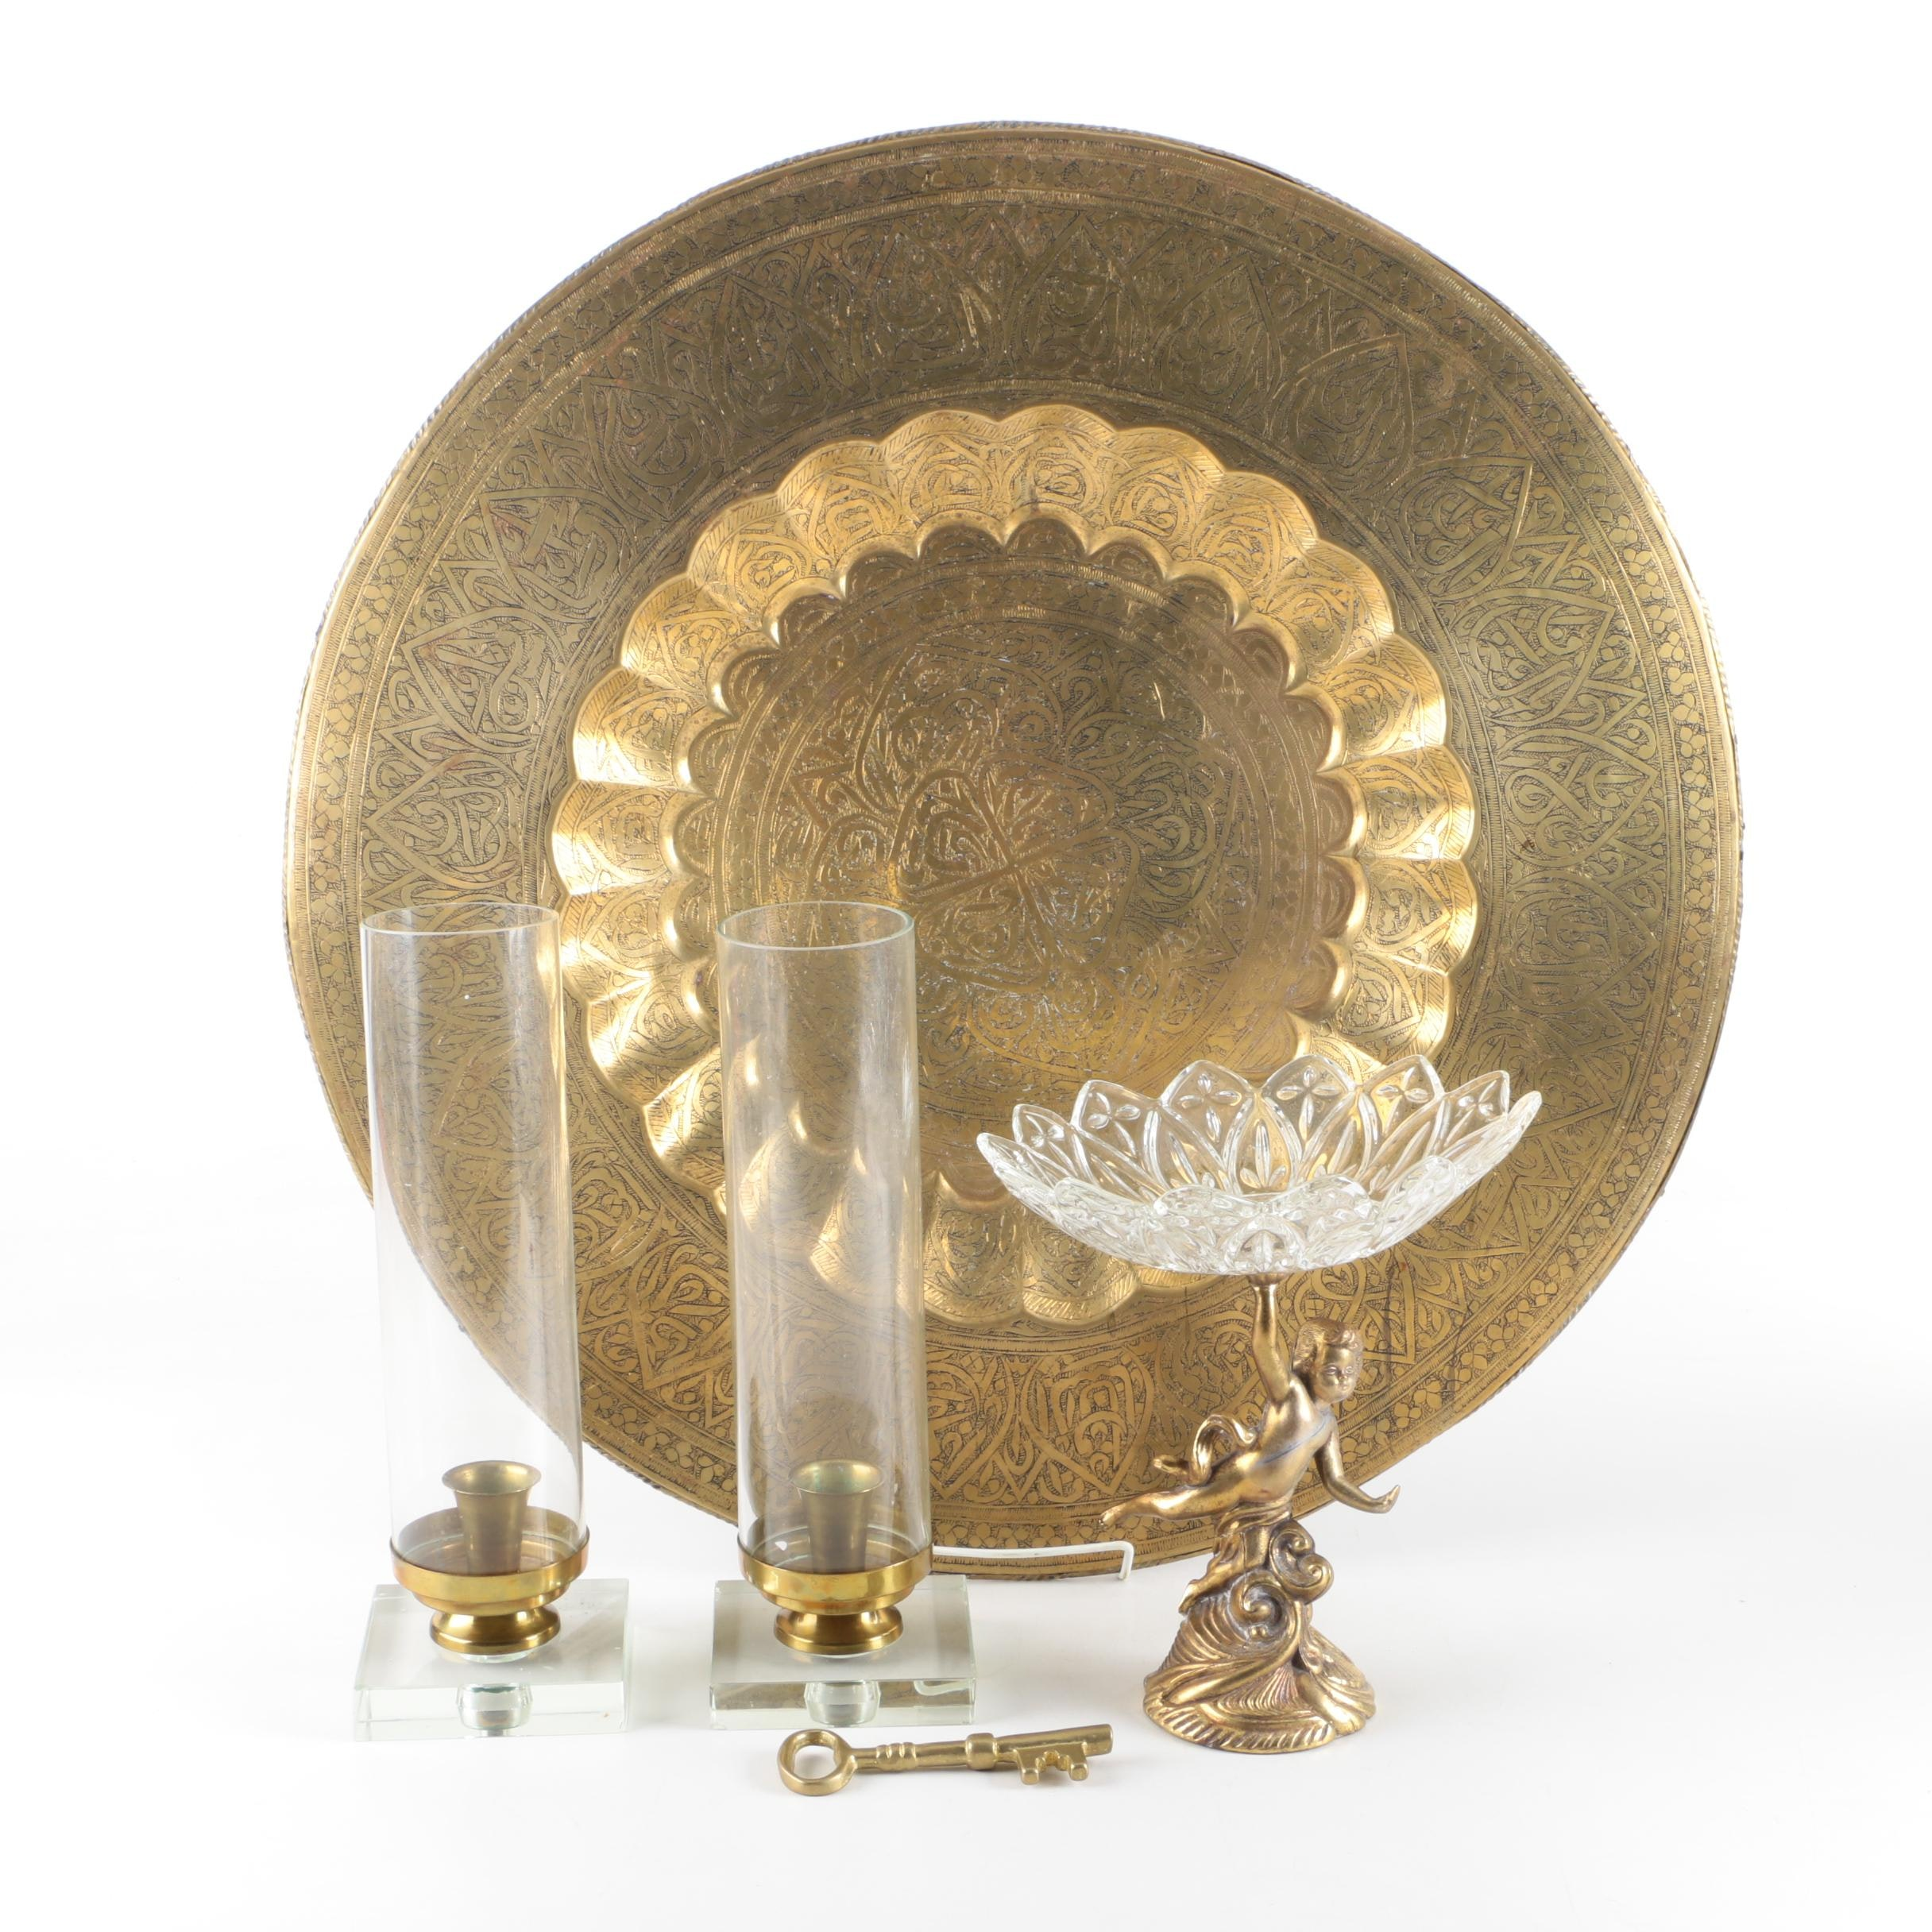 Brass Candle Holders and Platter